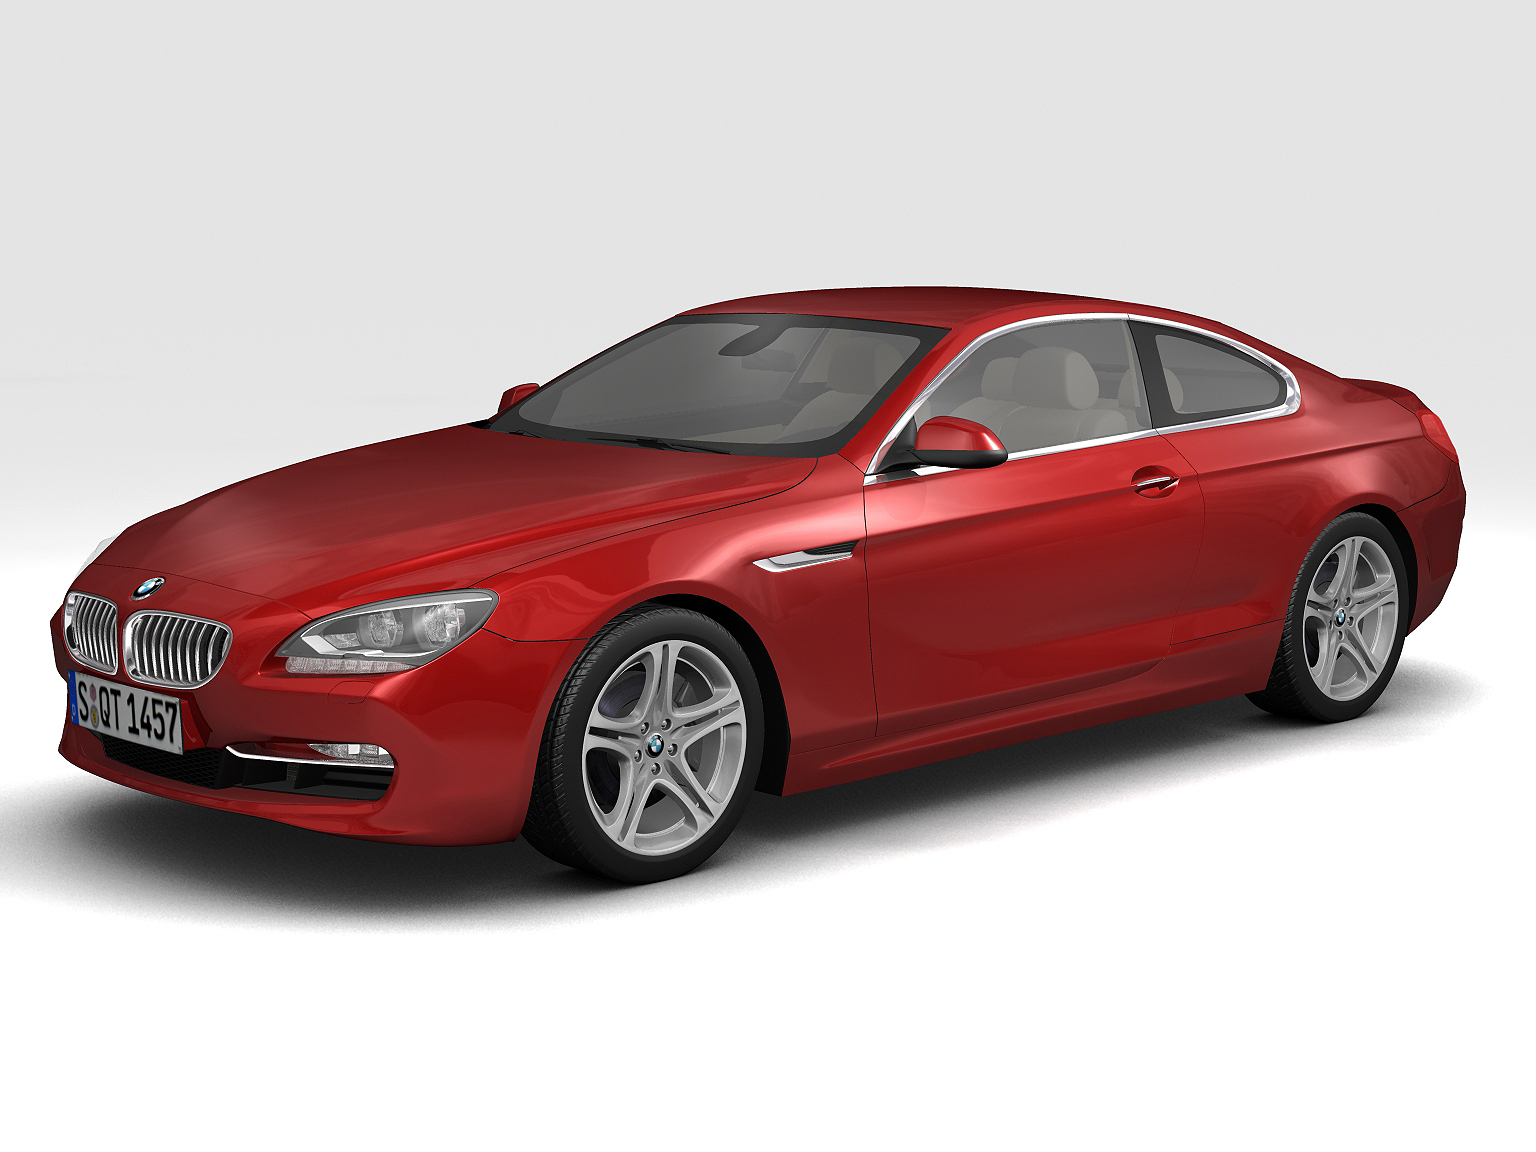 2011 bmw 6 seri coupe 3d model 3ds maks fbx c4ddua hrc xsi obj 161697